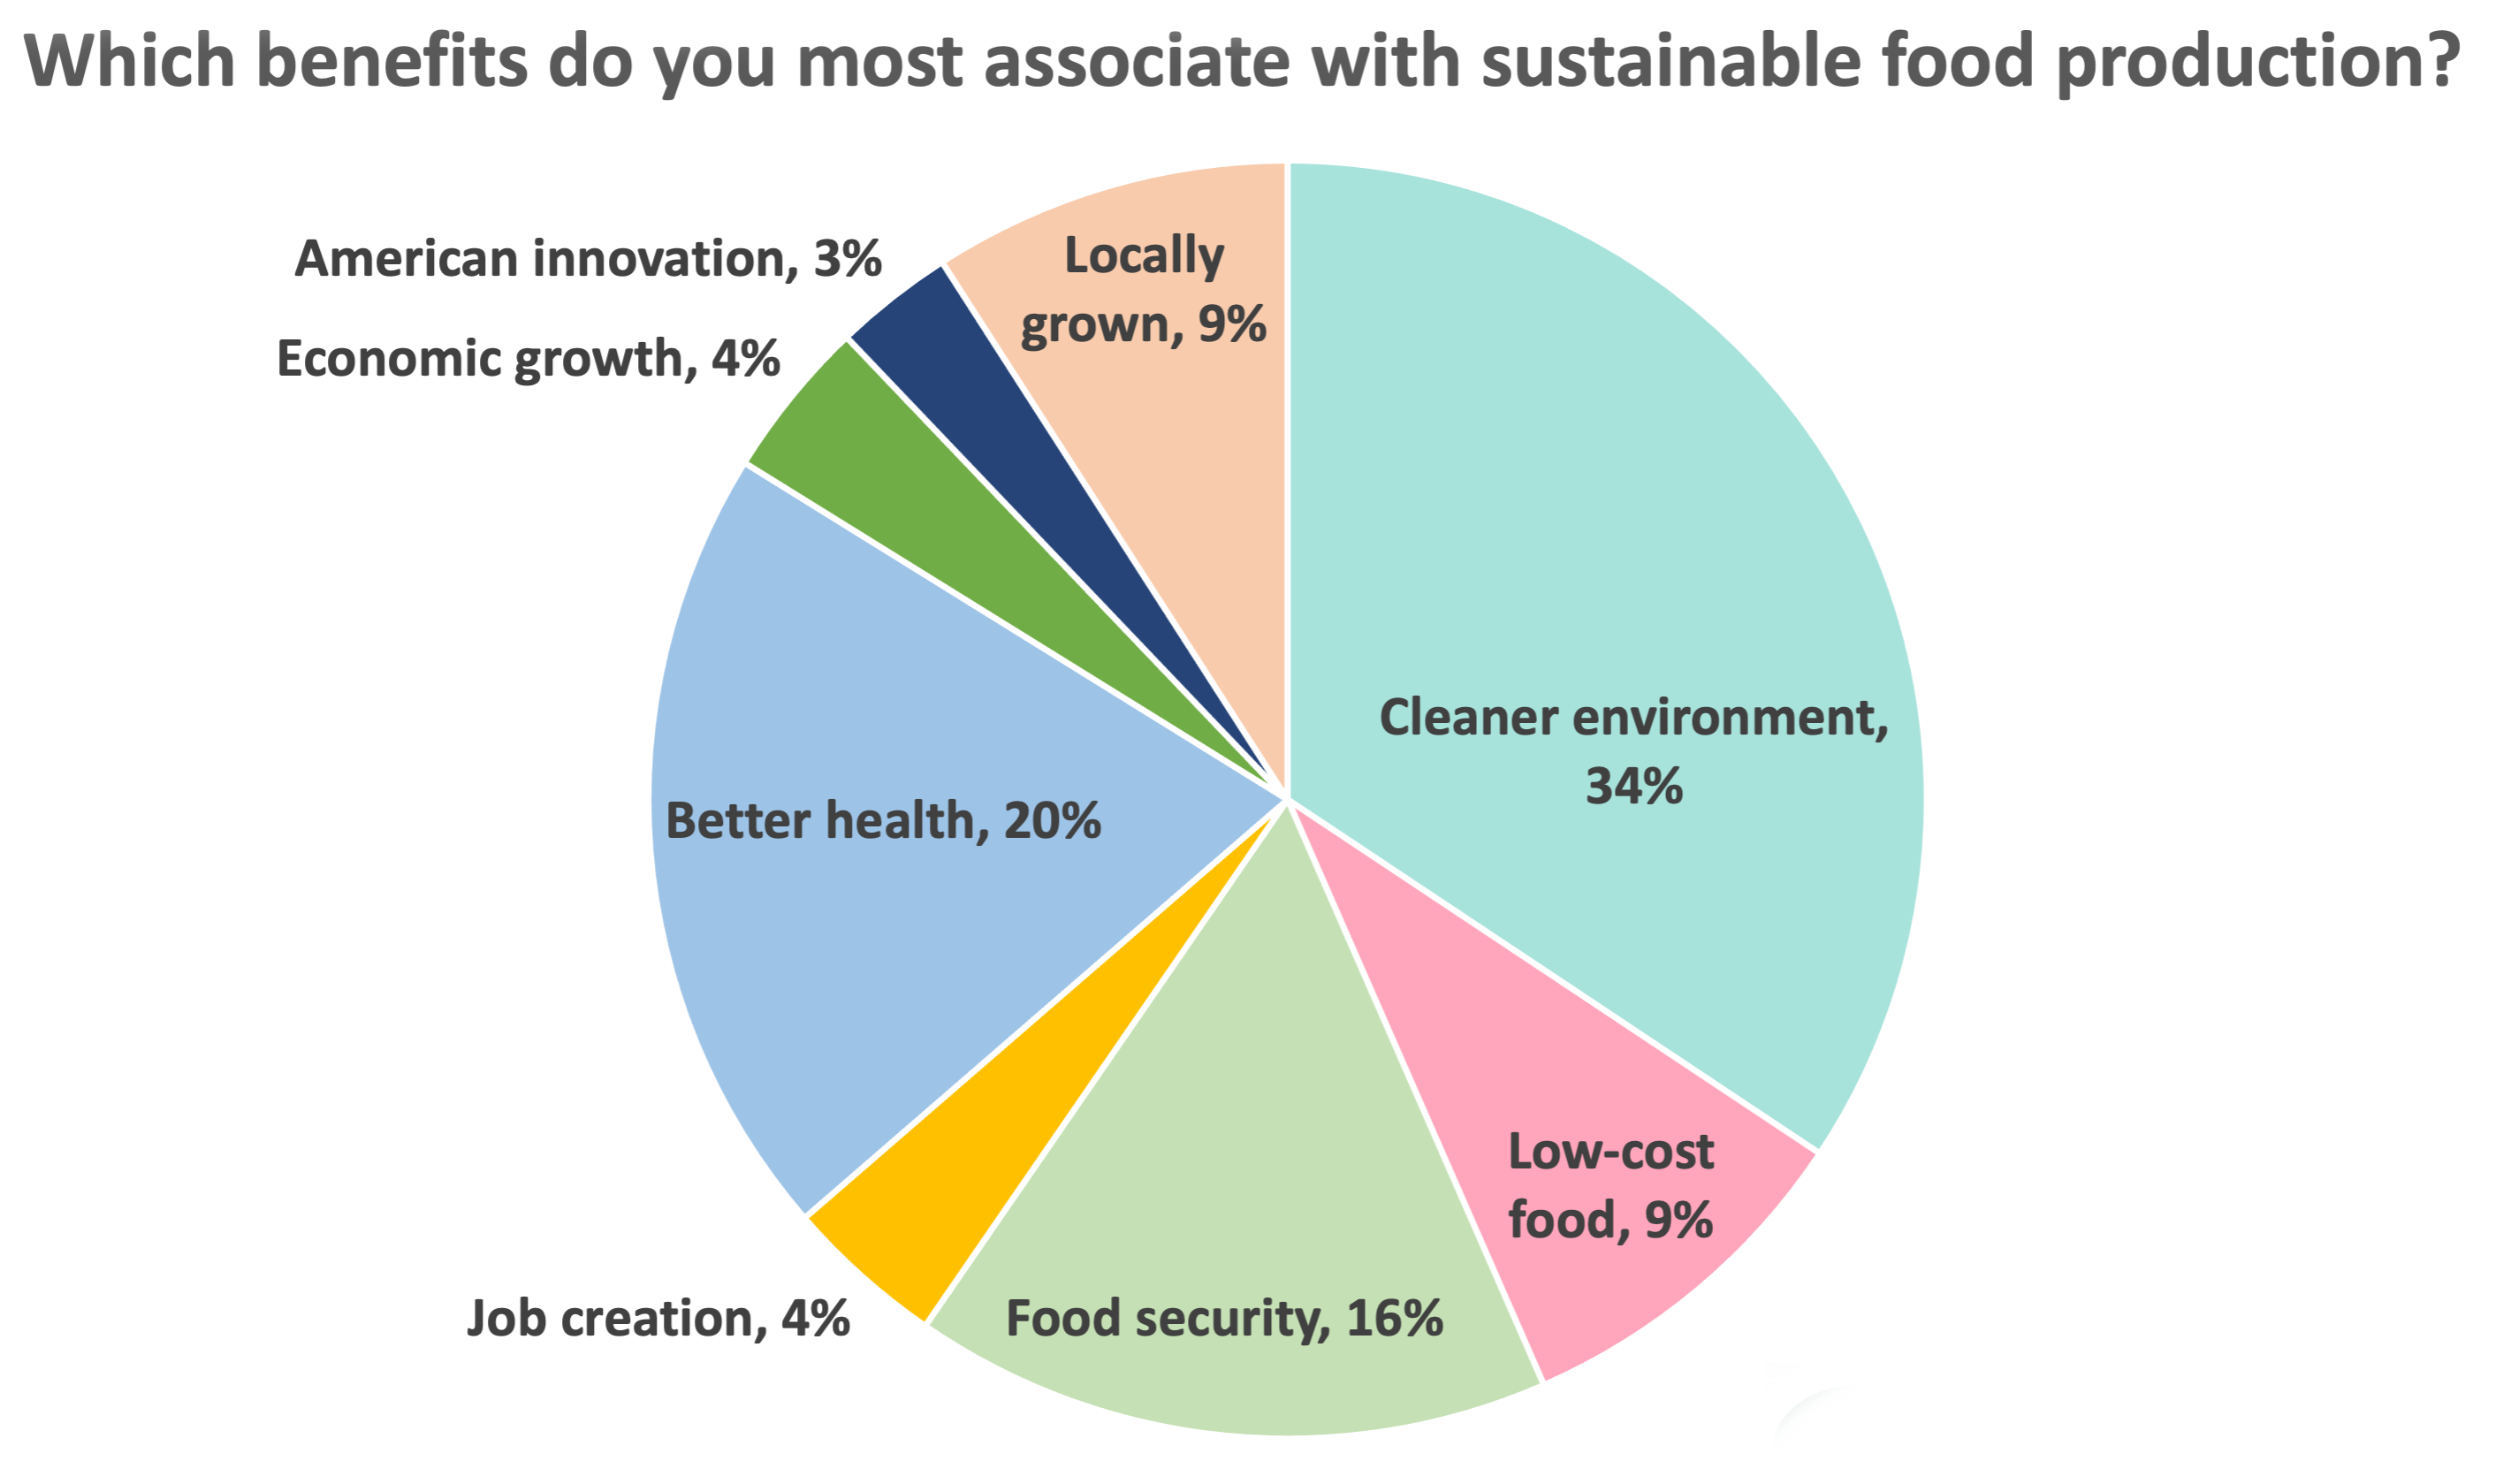 This chart shows which benefits people associate with sustainable food production. 34% said cleaner environment. 20% said better health. 16% said food security. 9% said low-cost food. 9% said locally grown. 4% said economic growth. 4% said job creation. Finally, 3% said American innovation.